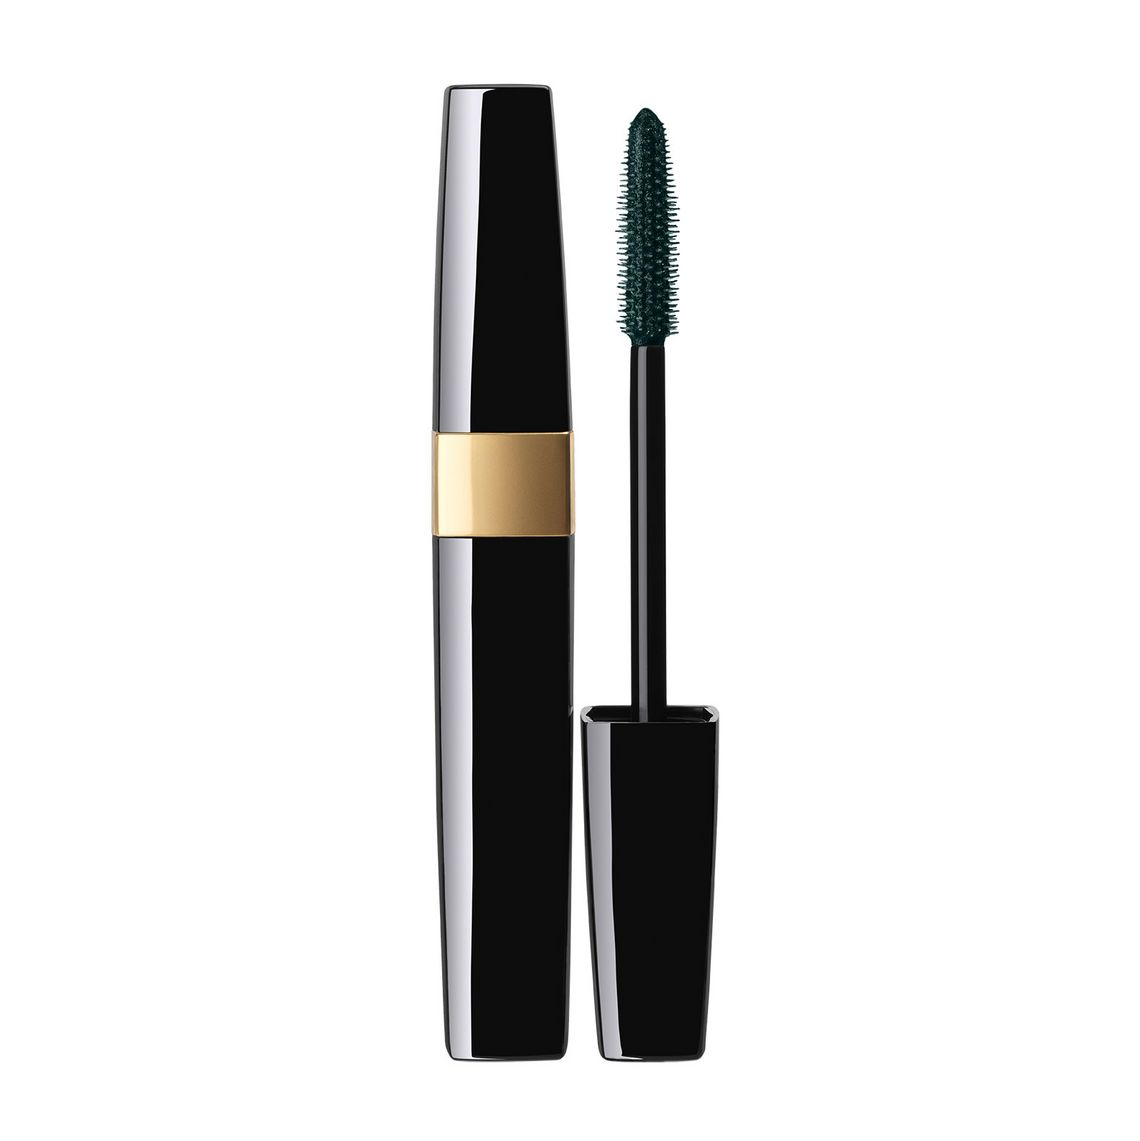 Mascara Intimitable Waterproof Vert Profond Chanel